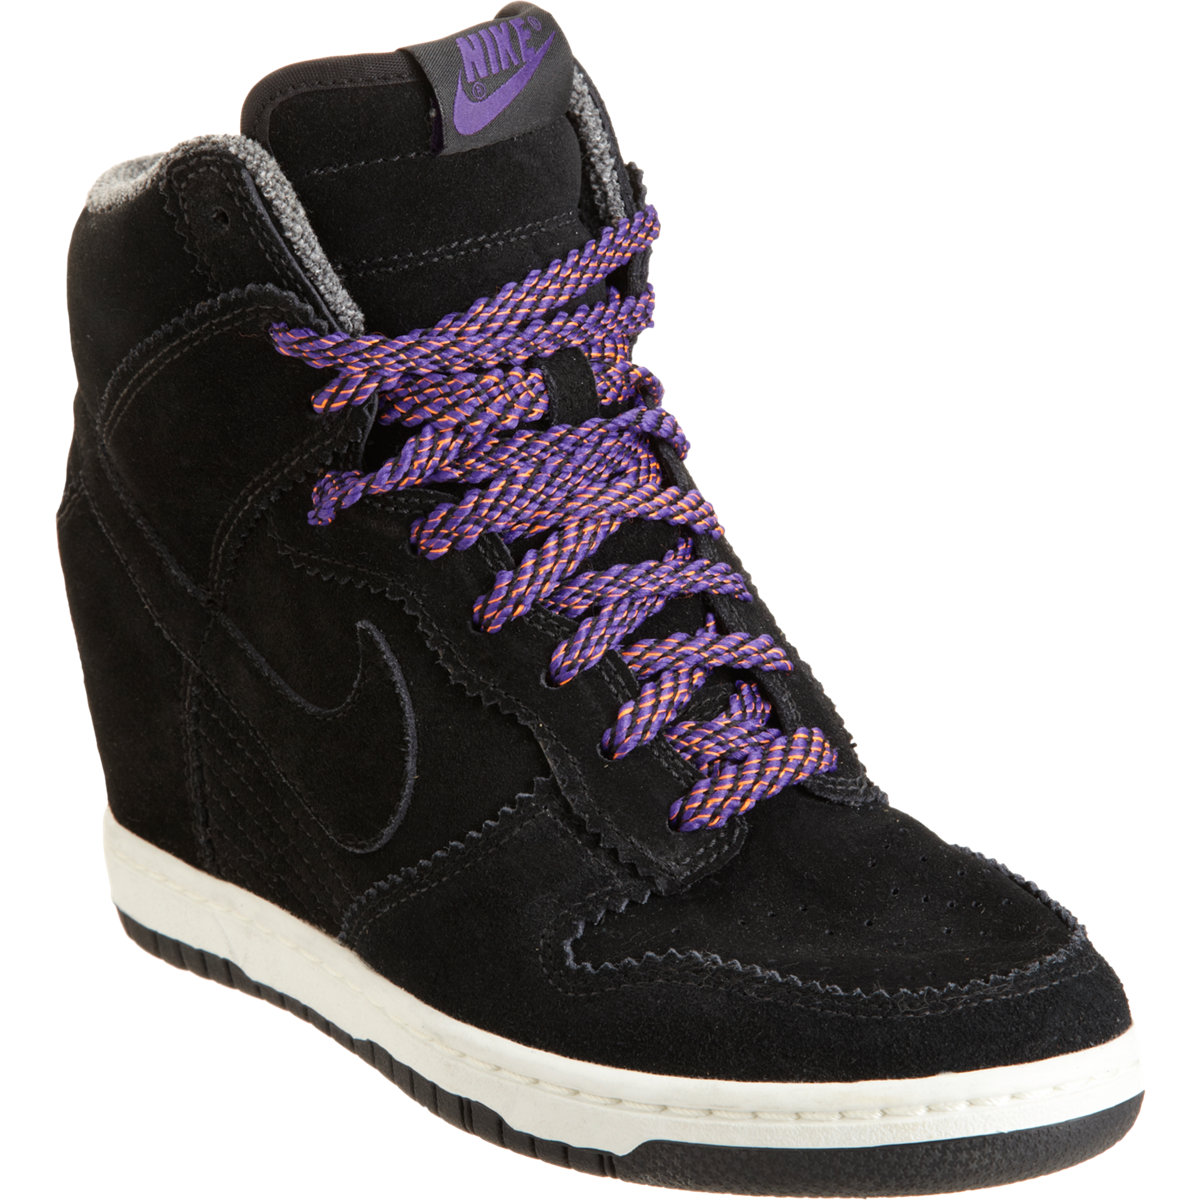 My Superficial Endeavors: Nike Dunk Sky Hi Wedge Sneakers |Wedges Sneakers Nike Black